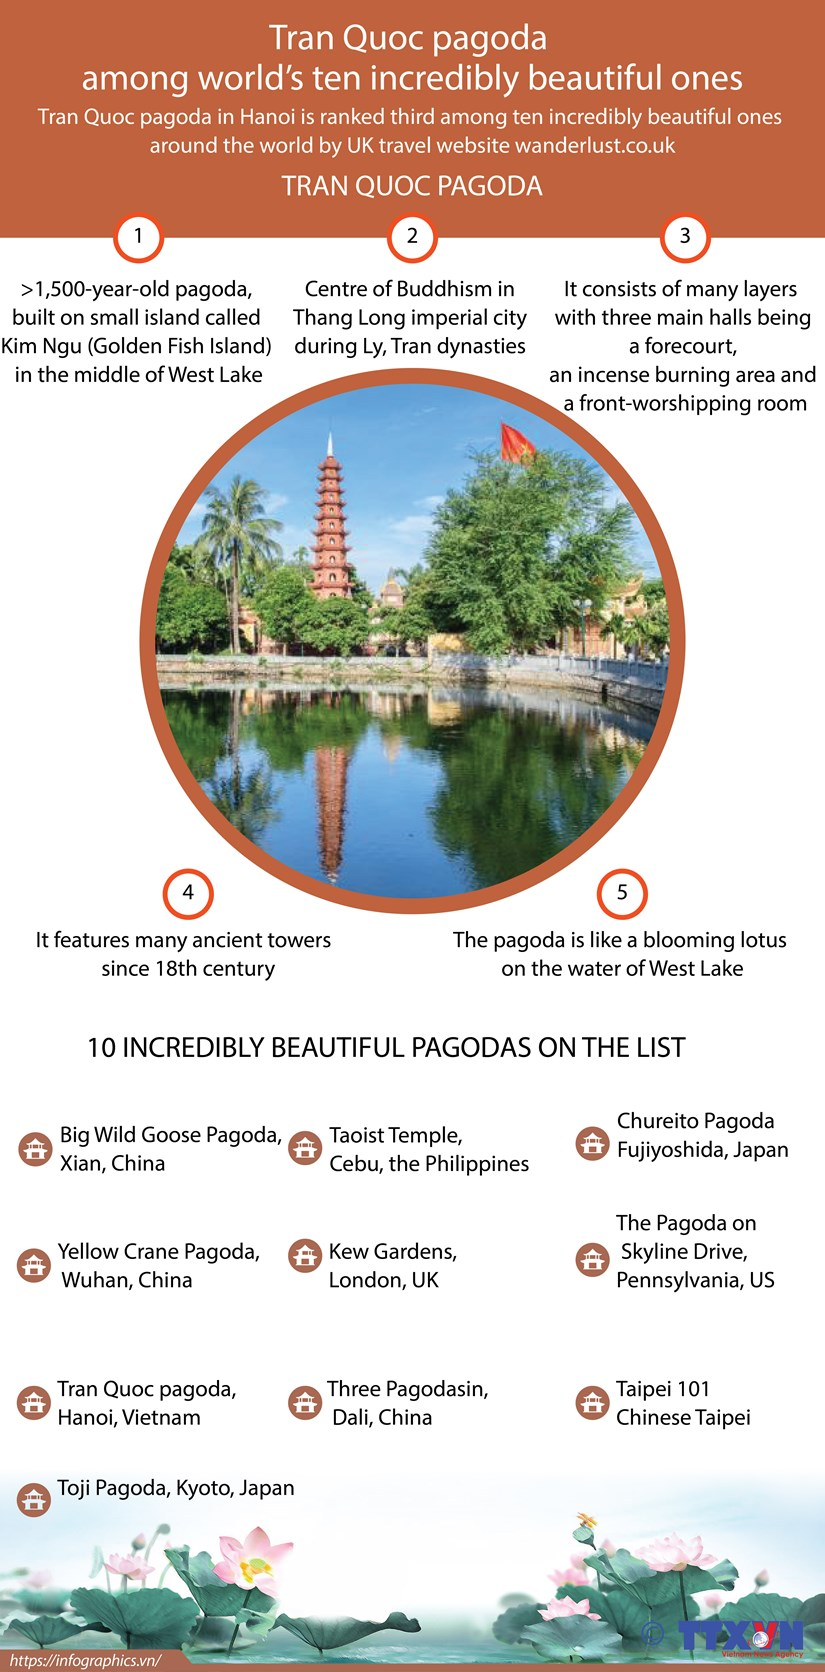 Tran Quoc pagoda among world's ten incredibly beautiful ones hinh anh 1